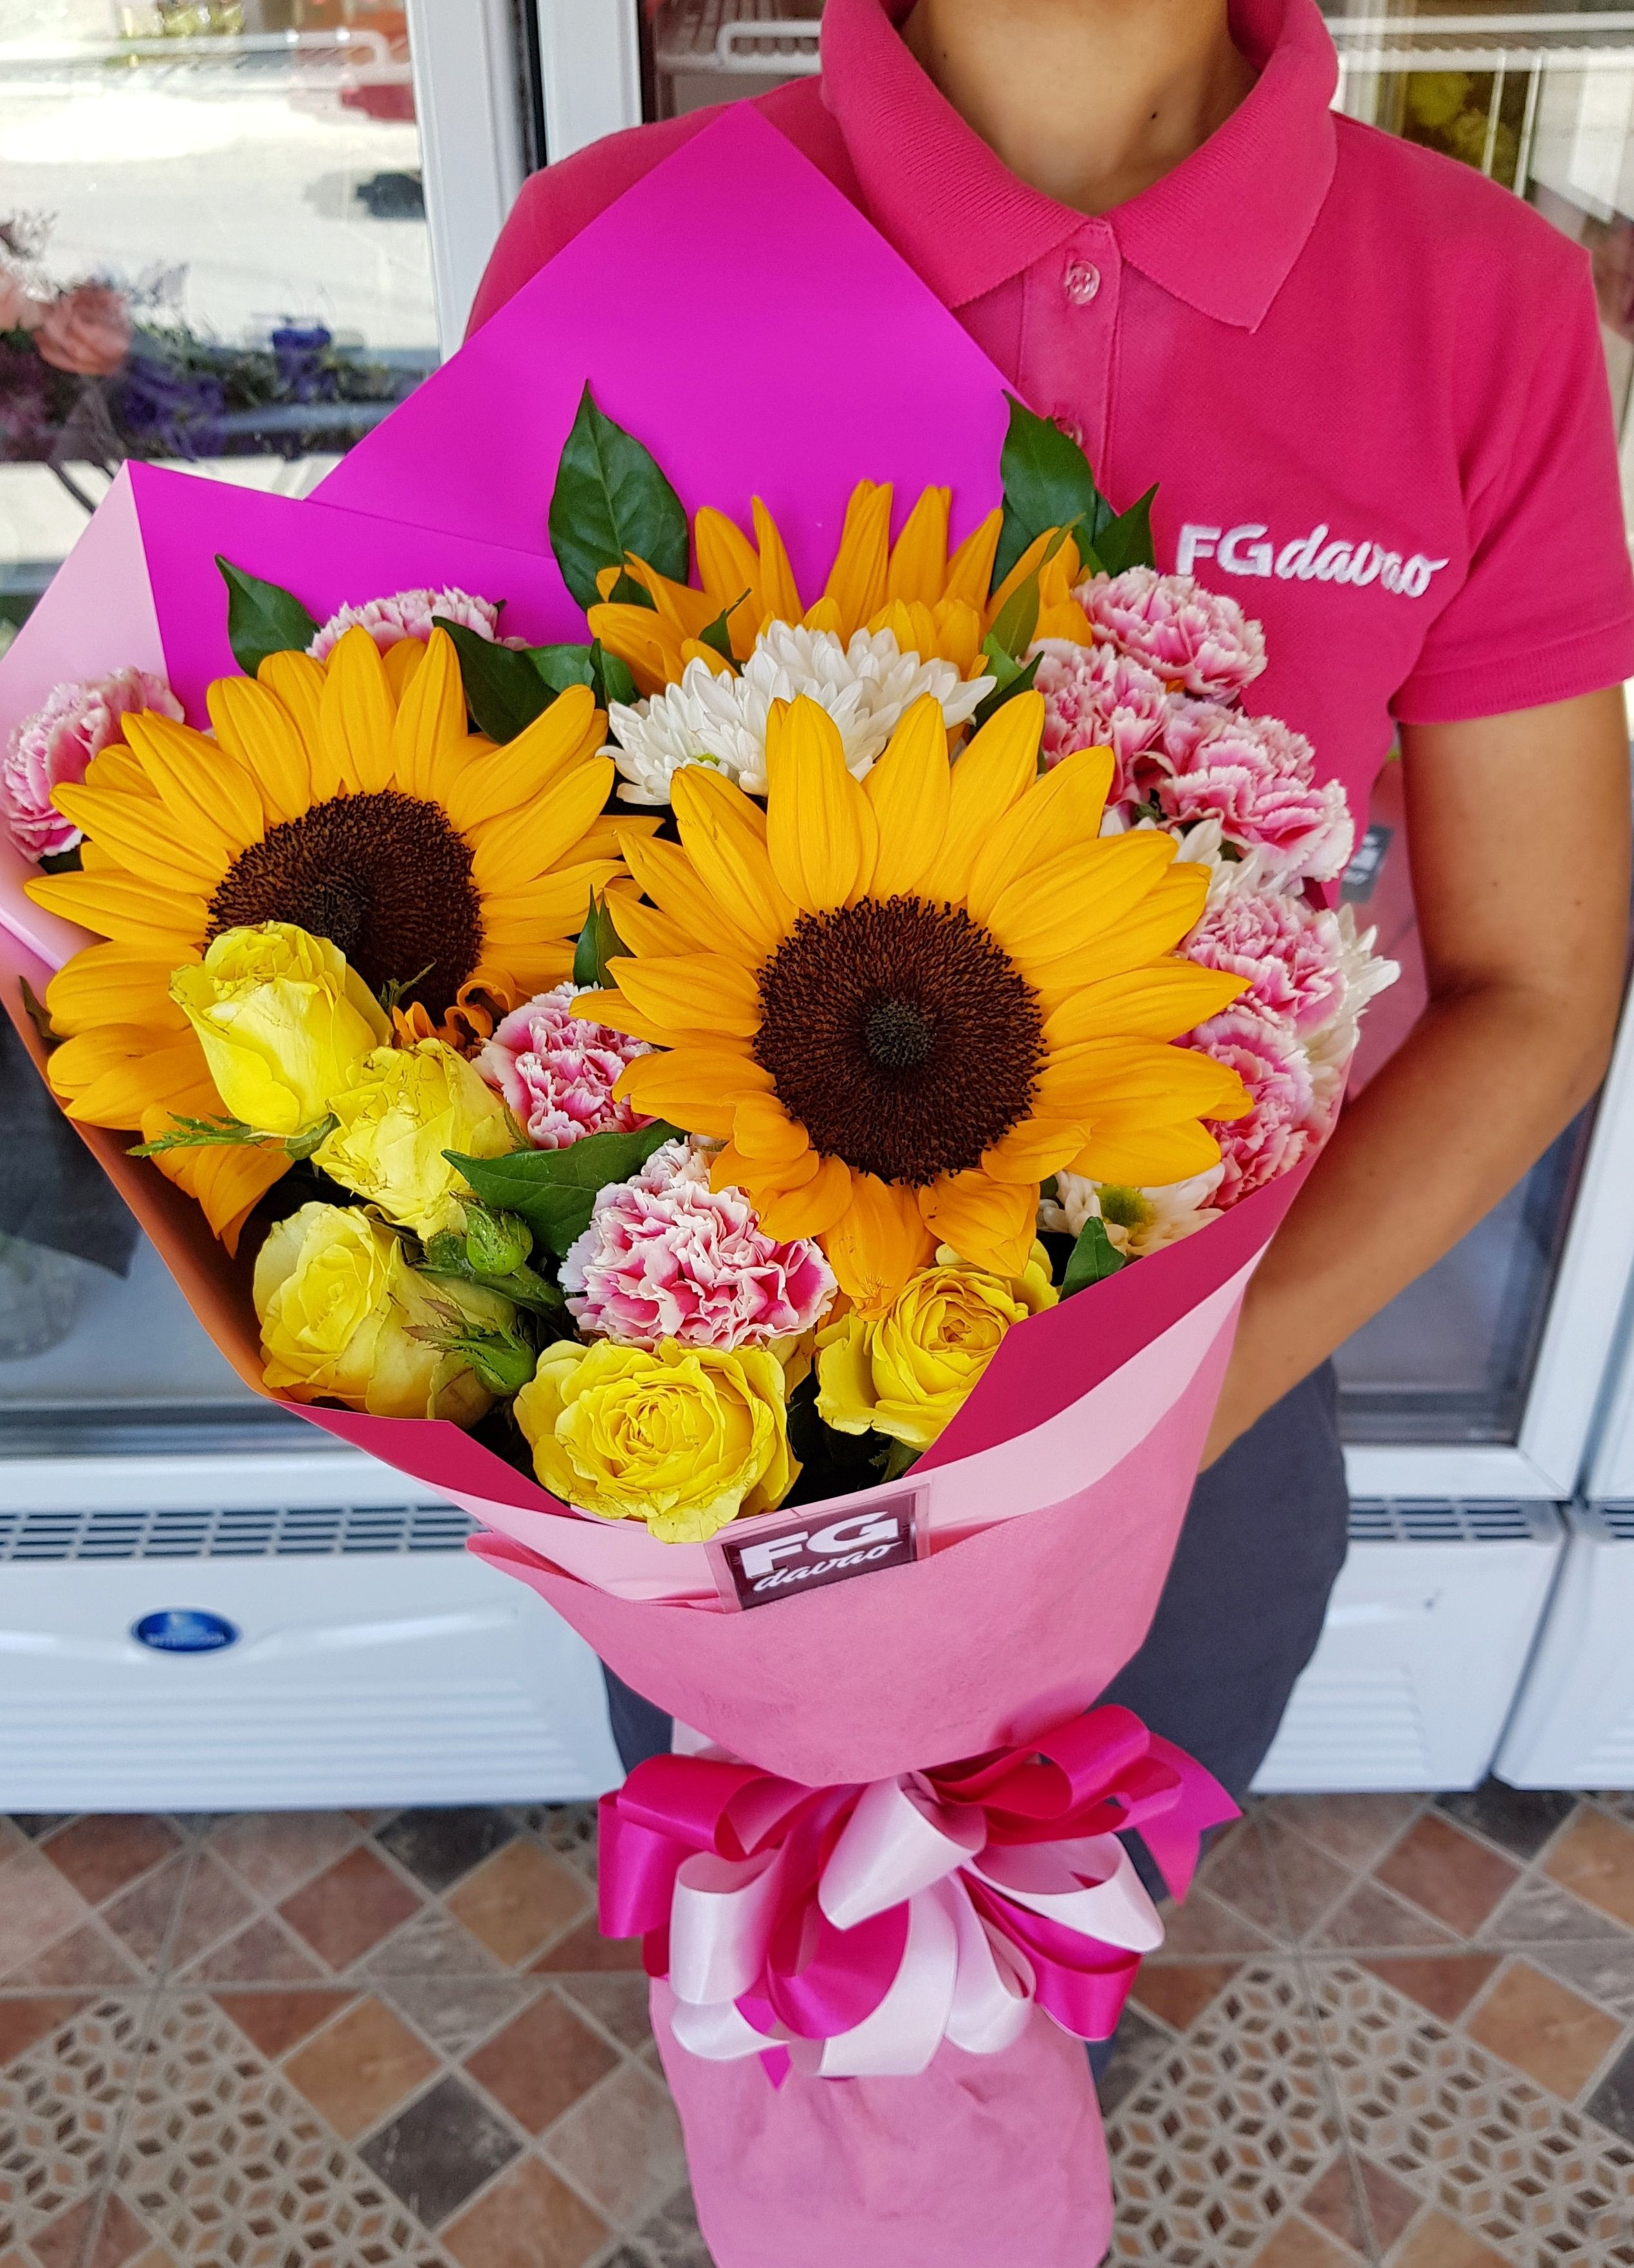 Send Flowers To Davao City Philippines Www Fgdavao Com Price List Can Be Seen On Our Website Store Address Online Flower Shop Flower Quotes Flower Delivery